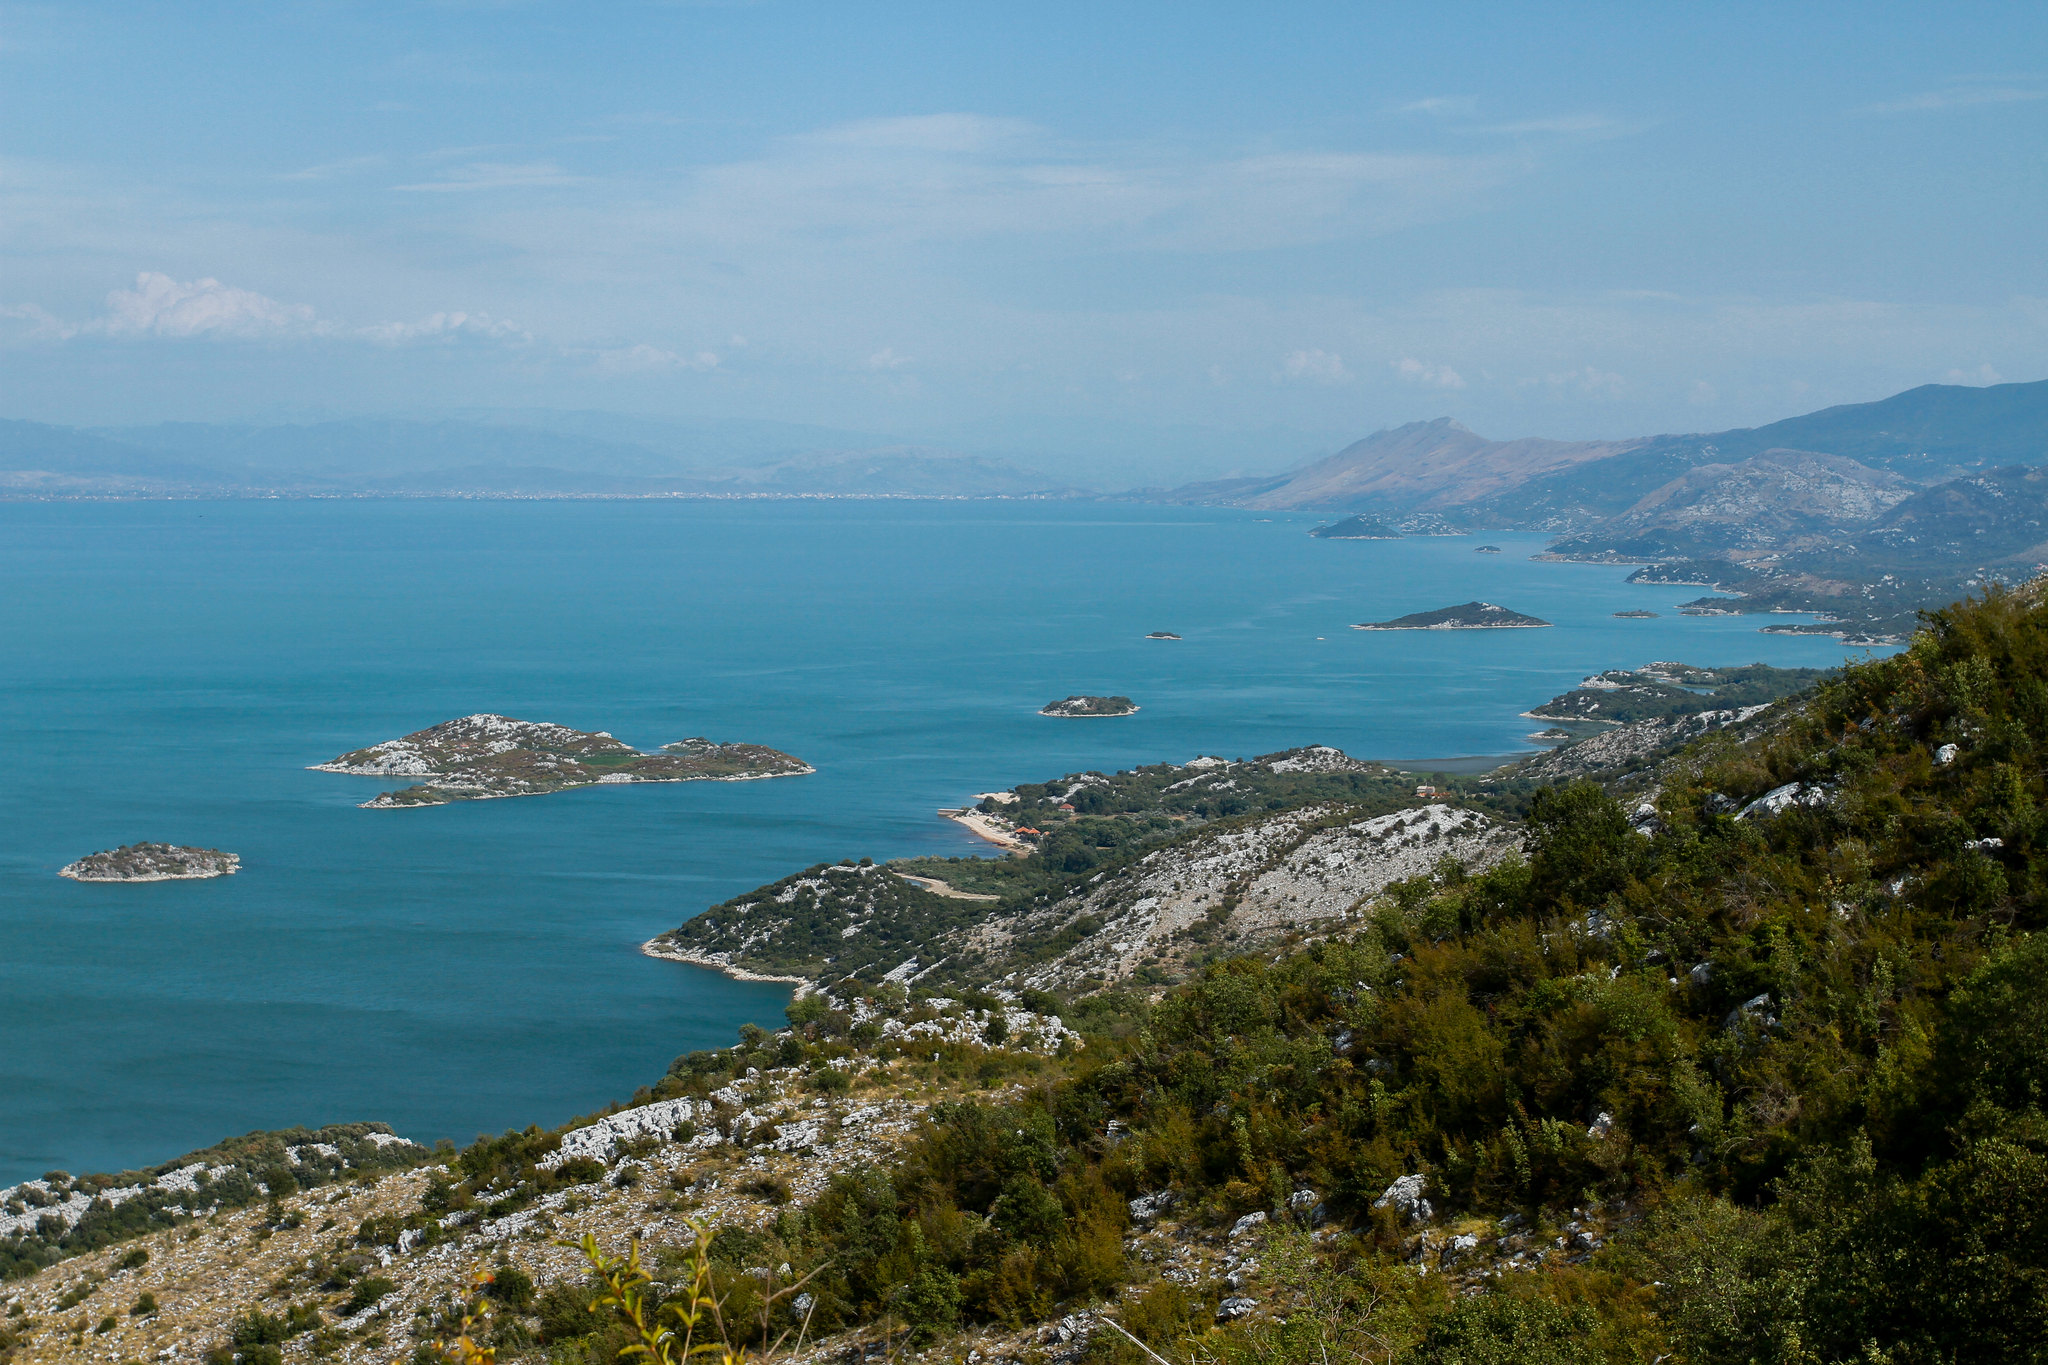 About Montenegro What is Montenegro Famous For